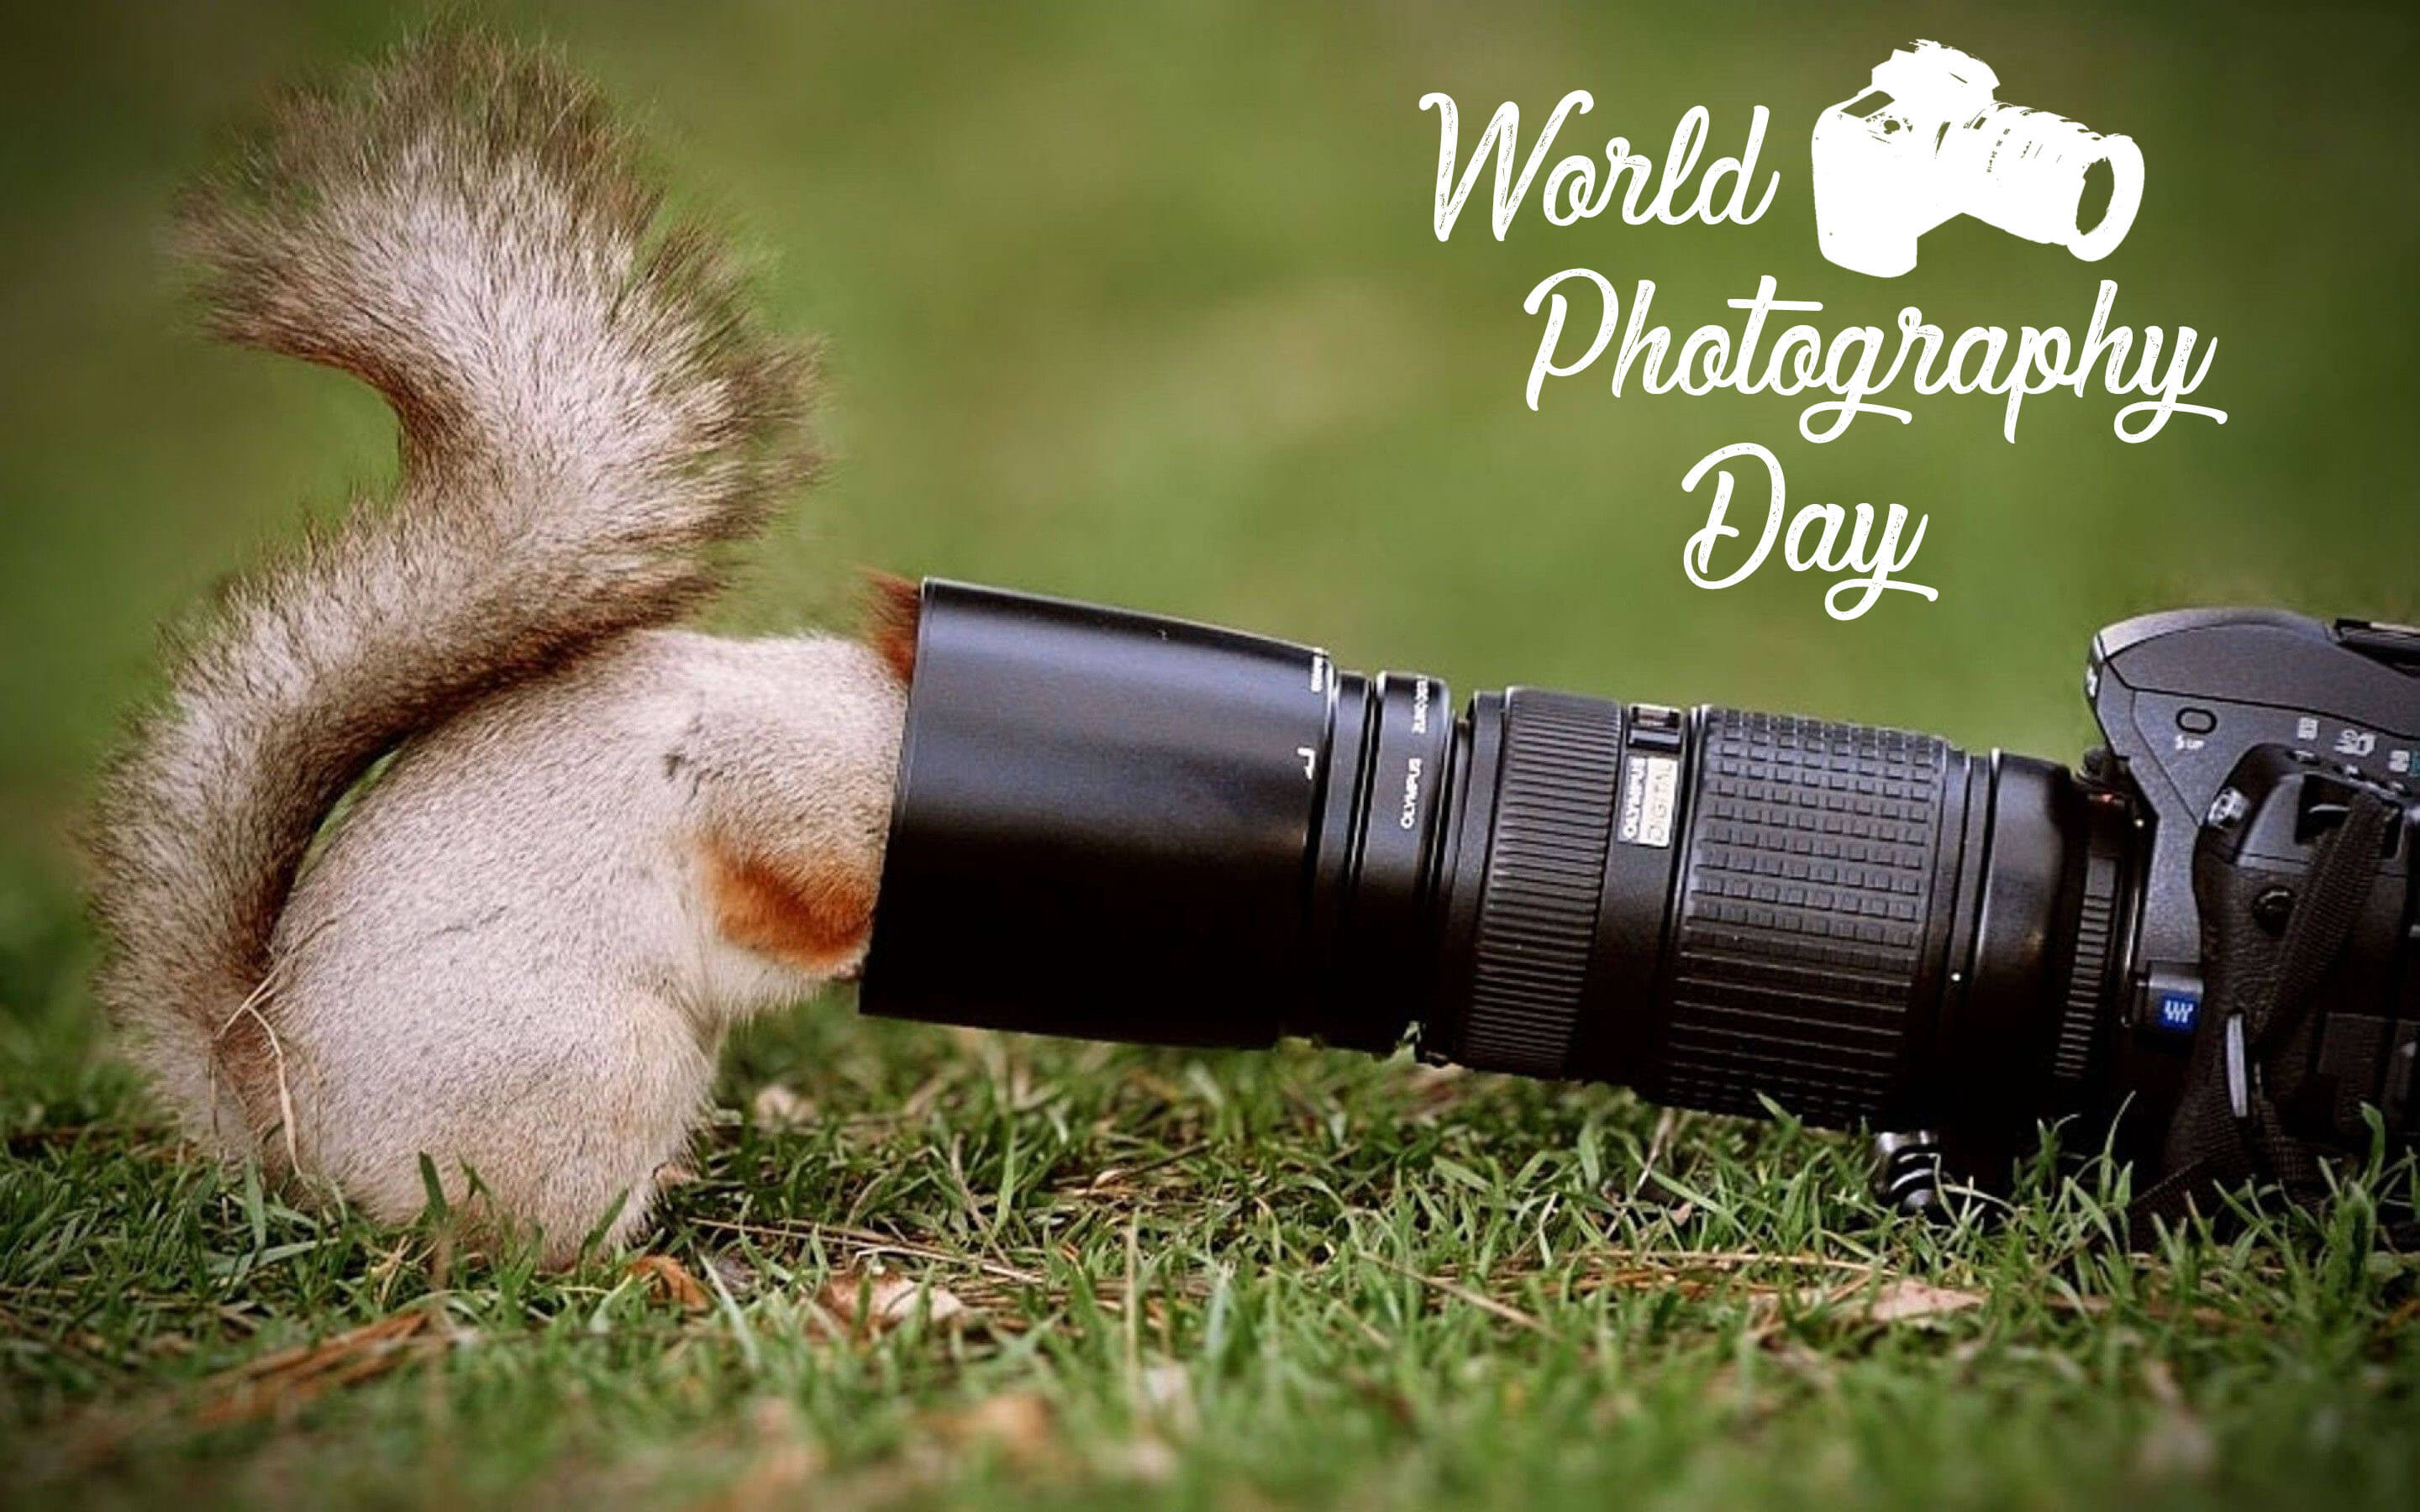 World Photography Day Squirrel In Camera Lens Hd Wallpaper Photography Hd 2880x1800 Download Hd Wallpaper Wallpapertip